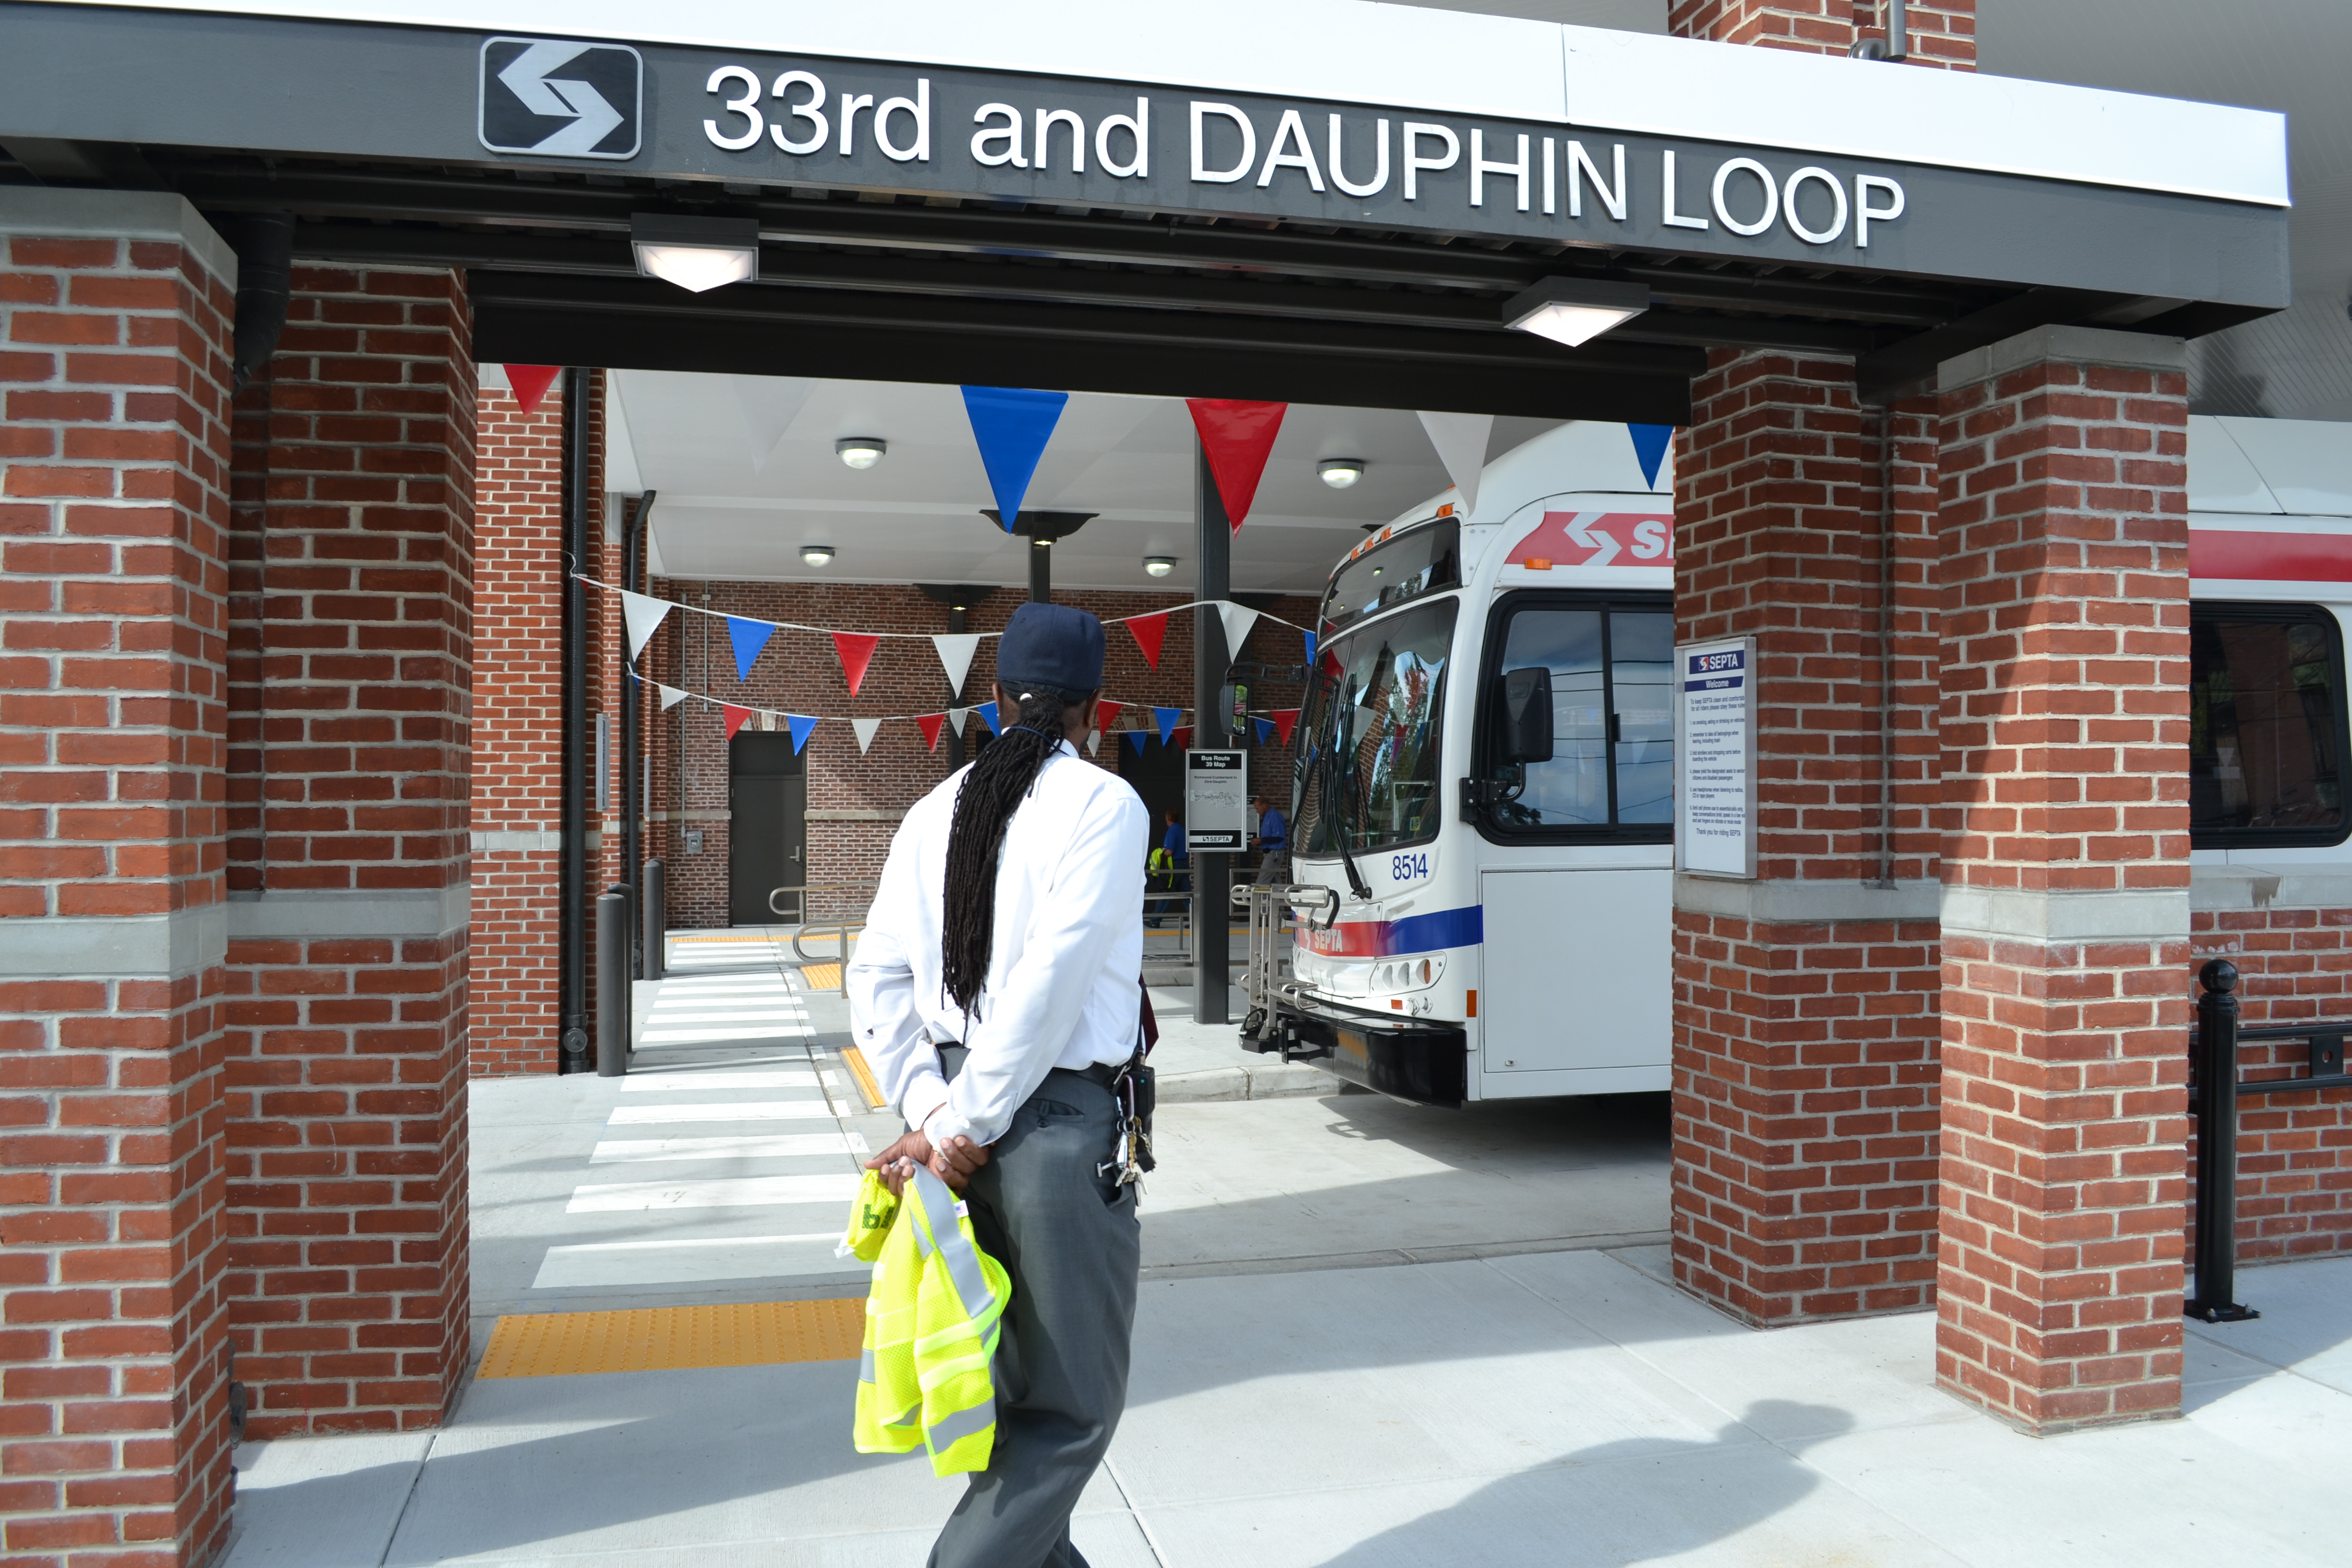 A SEPTA employee stood in a gateway into the bus loop